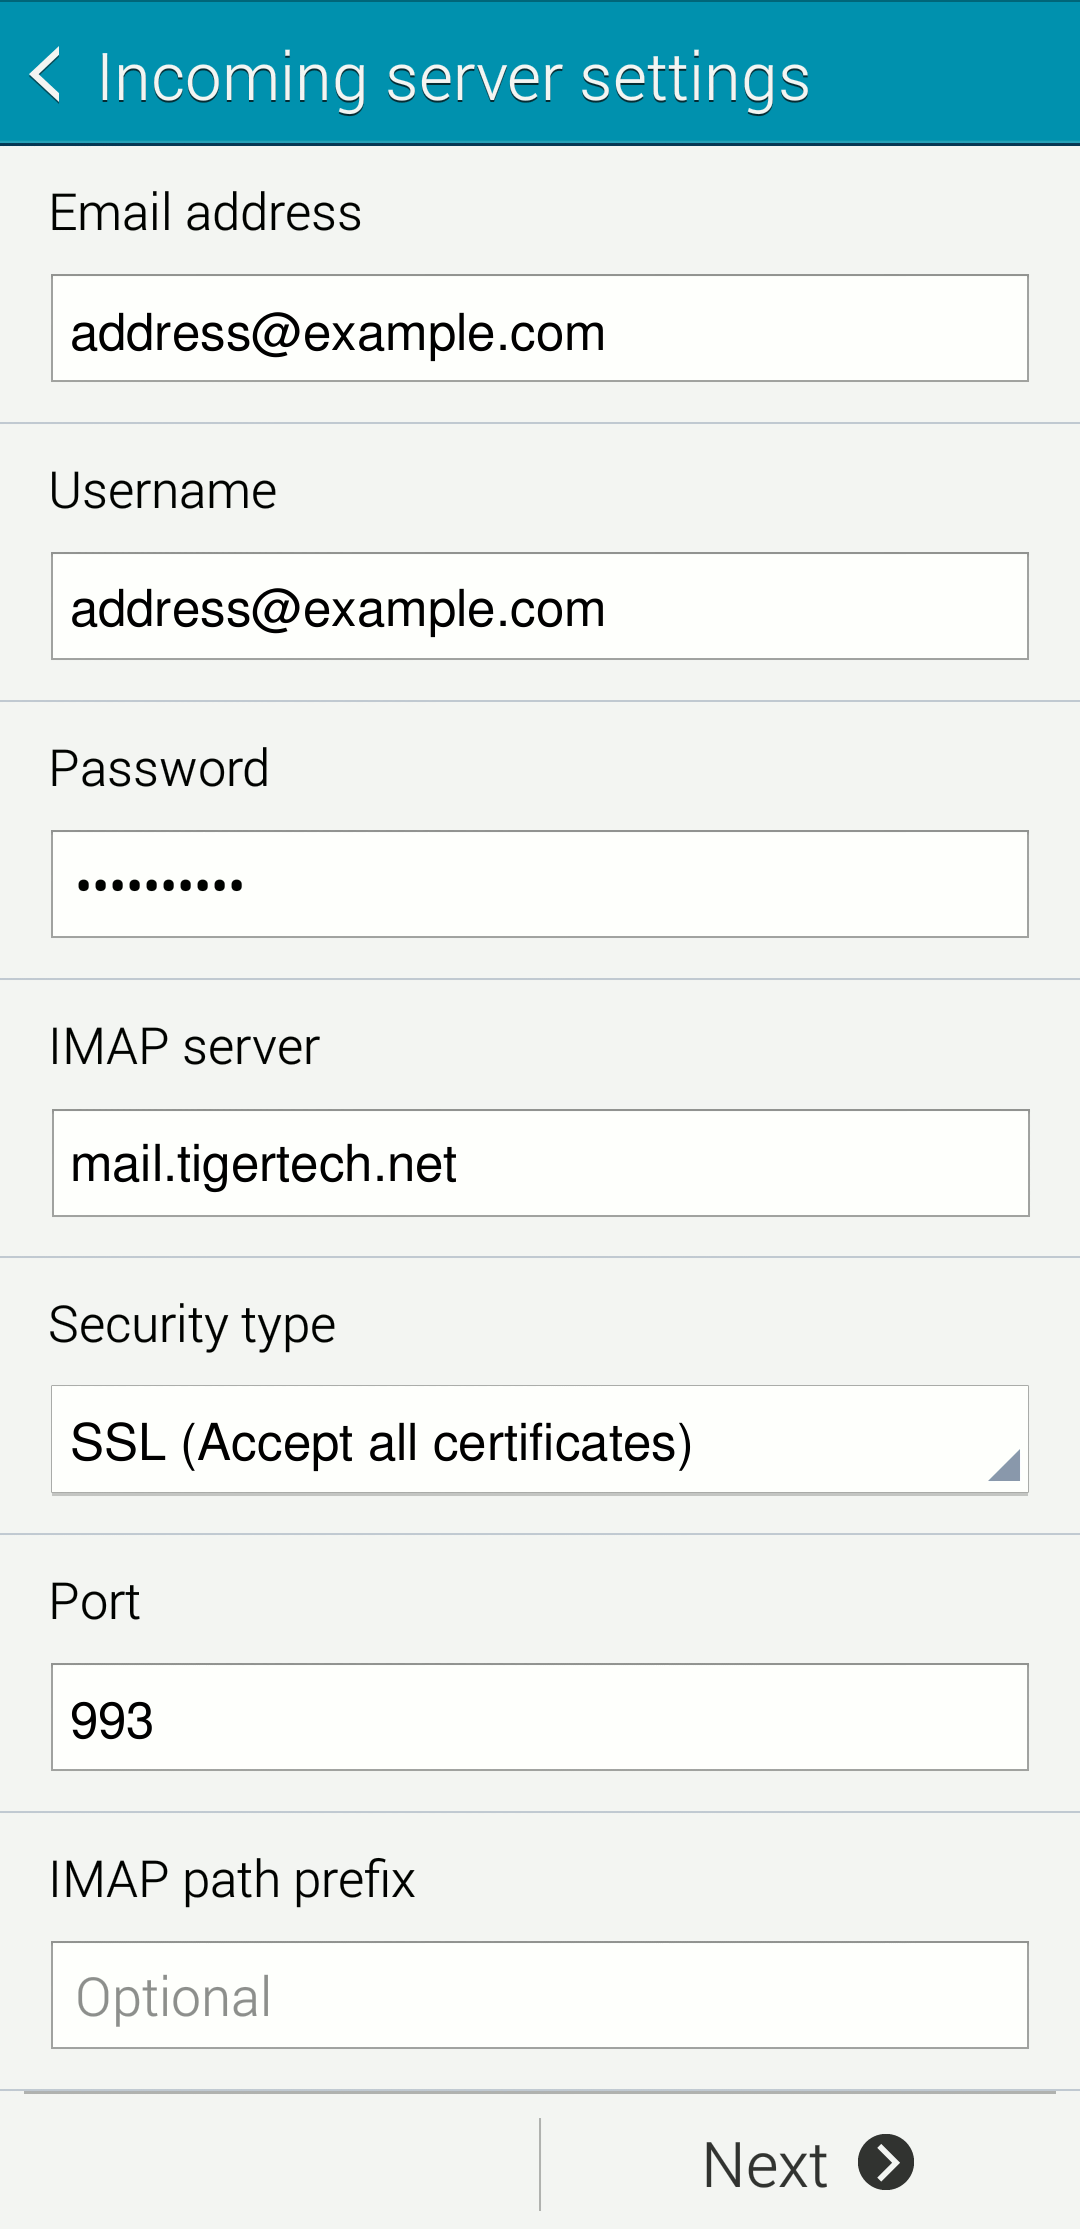 Verifying android settings tiger technologies support android incoming mail settings screen xflitez Image collections